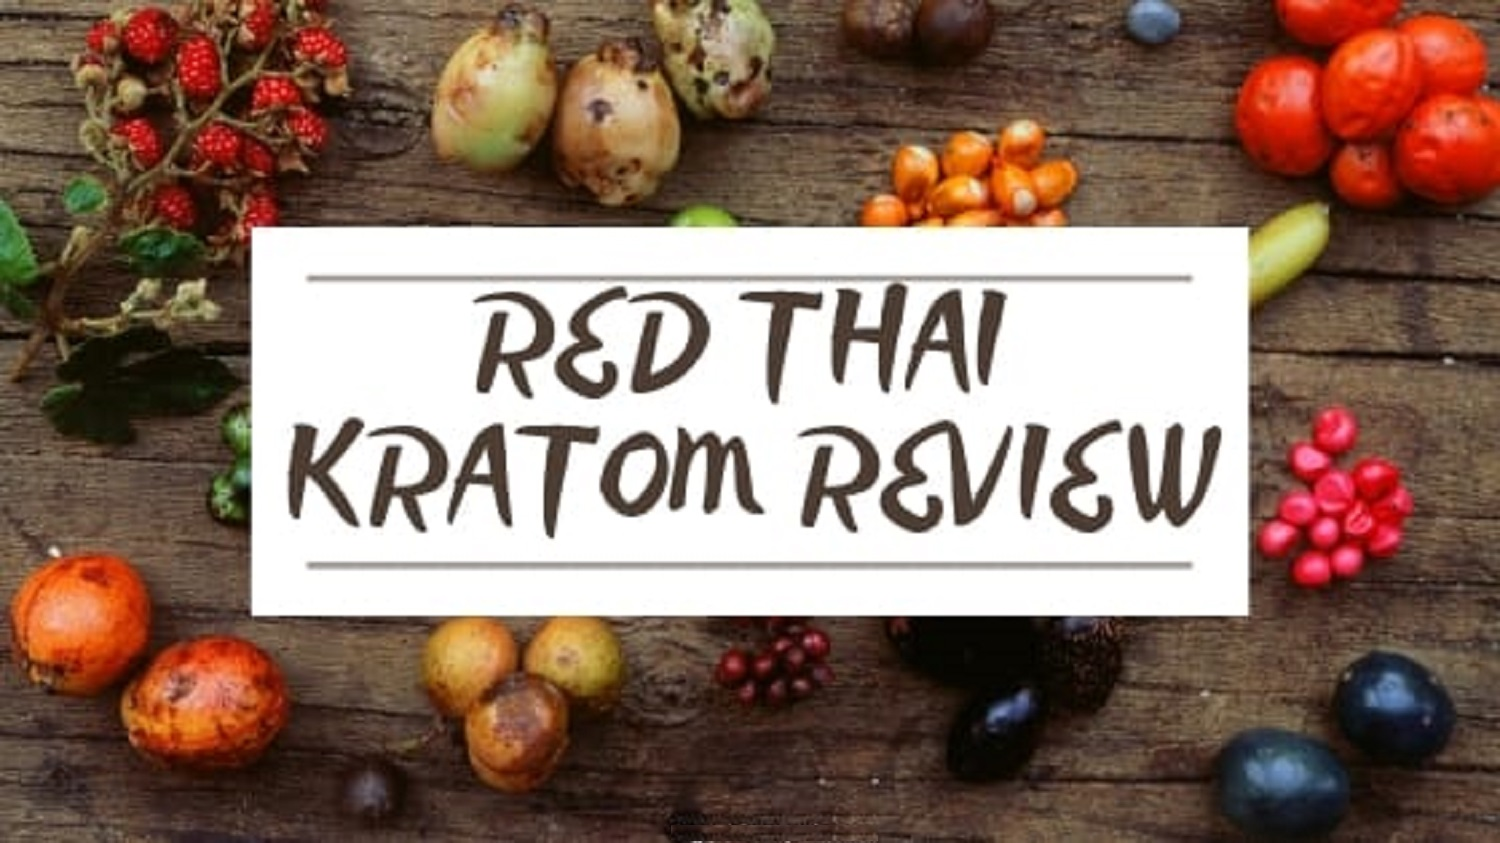 Red Thai Kratom Review